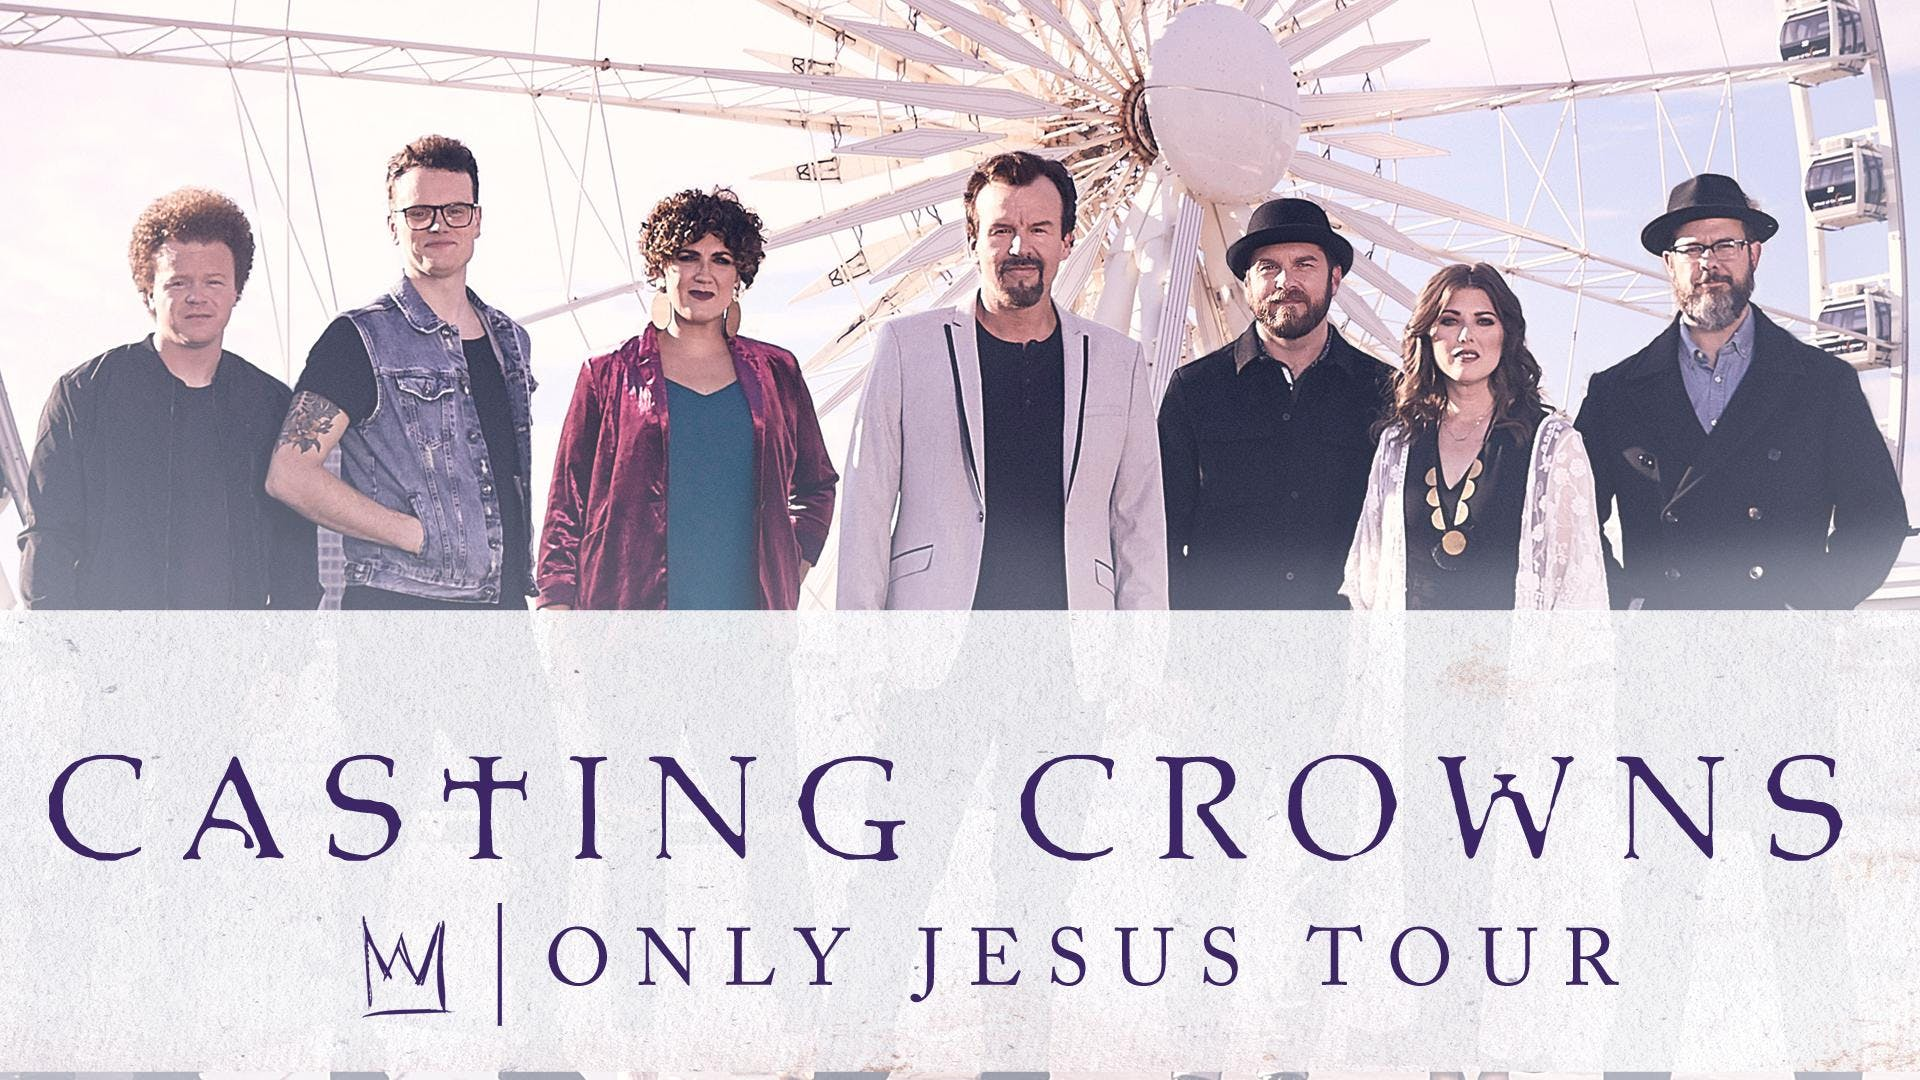 Casting Crowns Tour 2020.Casting Crowns Only Jesus Tour Wheeling Wv Tickets